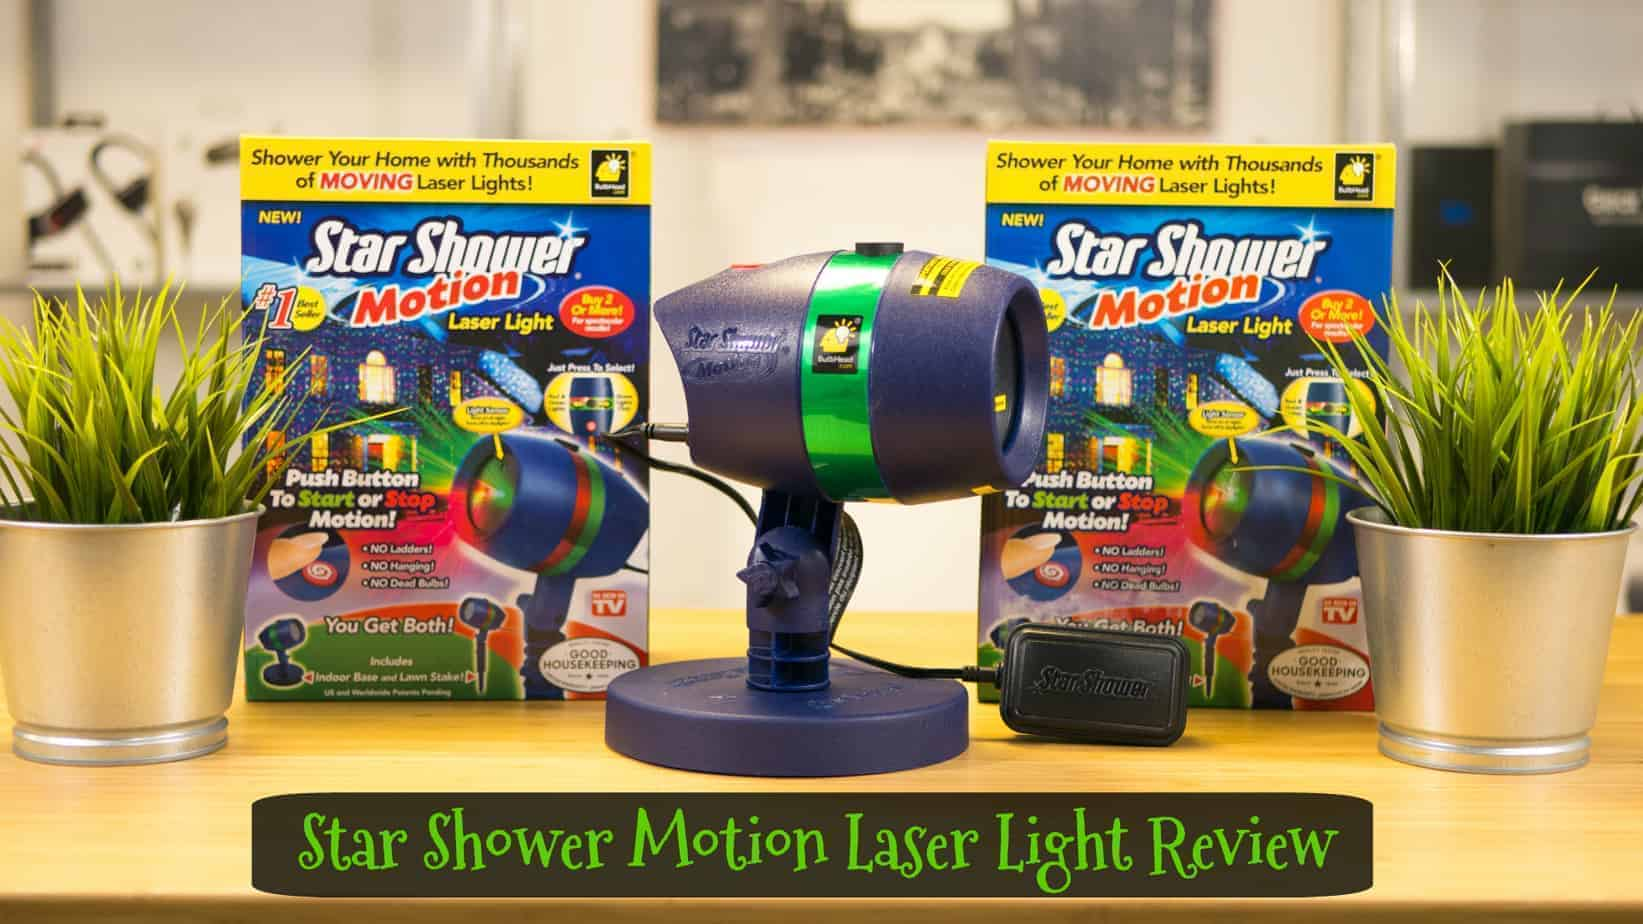 Star Shower Motion Holiday Laser Light Review